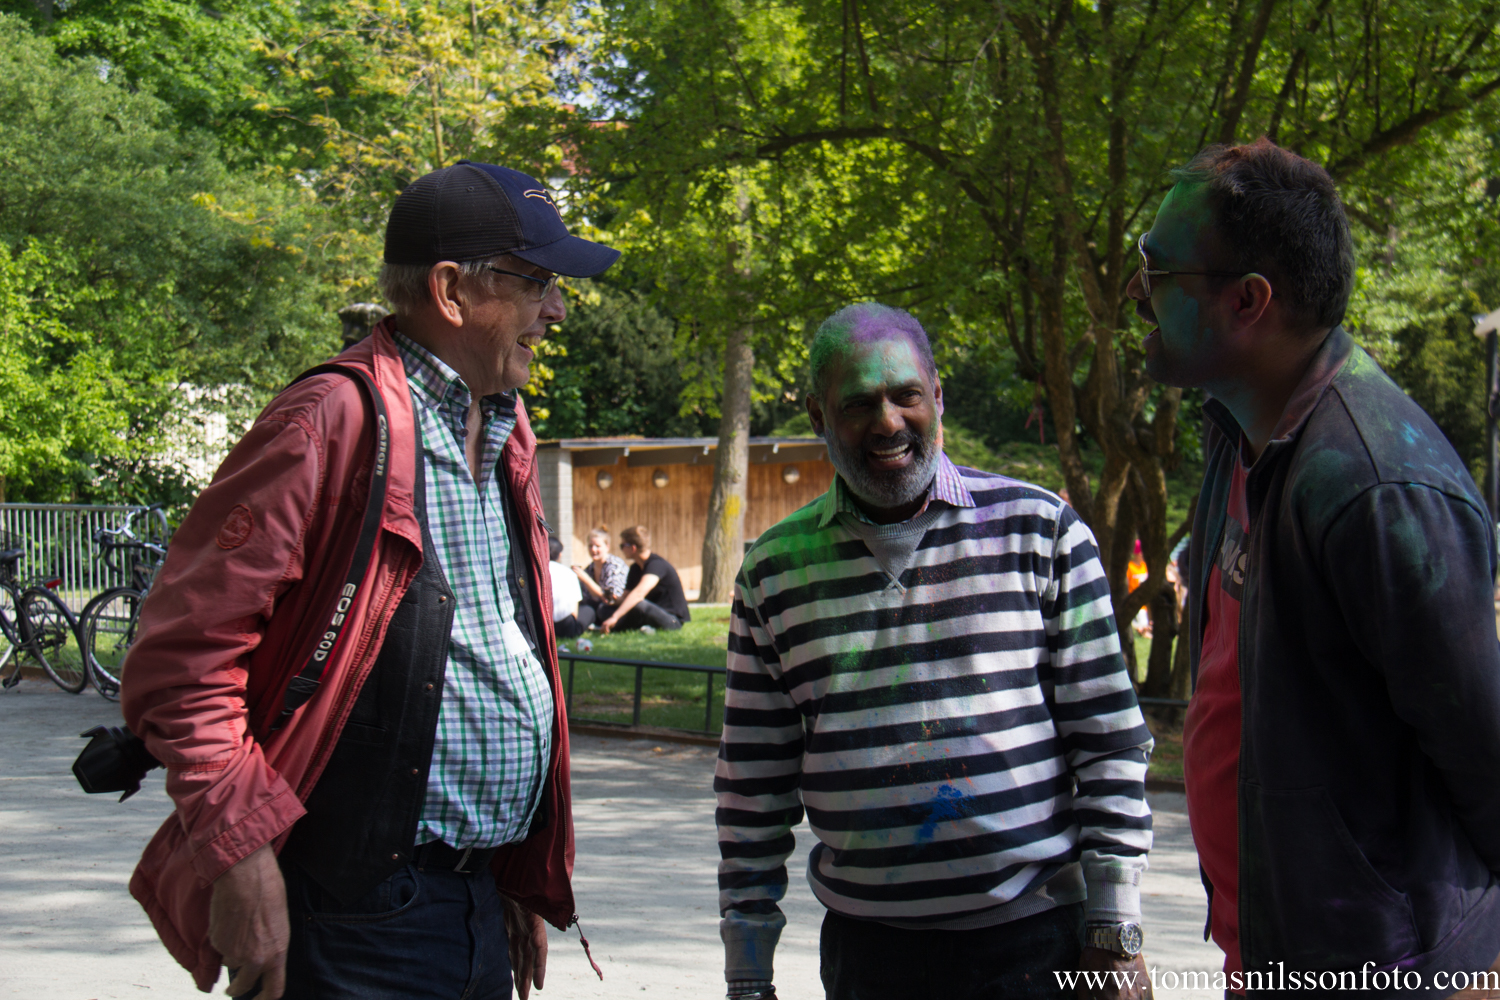 My dad speaking to two of the people who had taken part in the Holi celebrations held in a different part of the park.